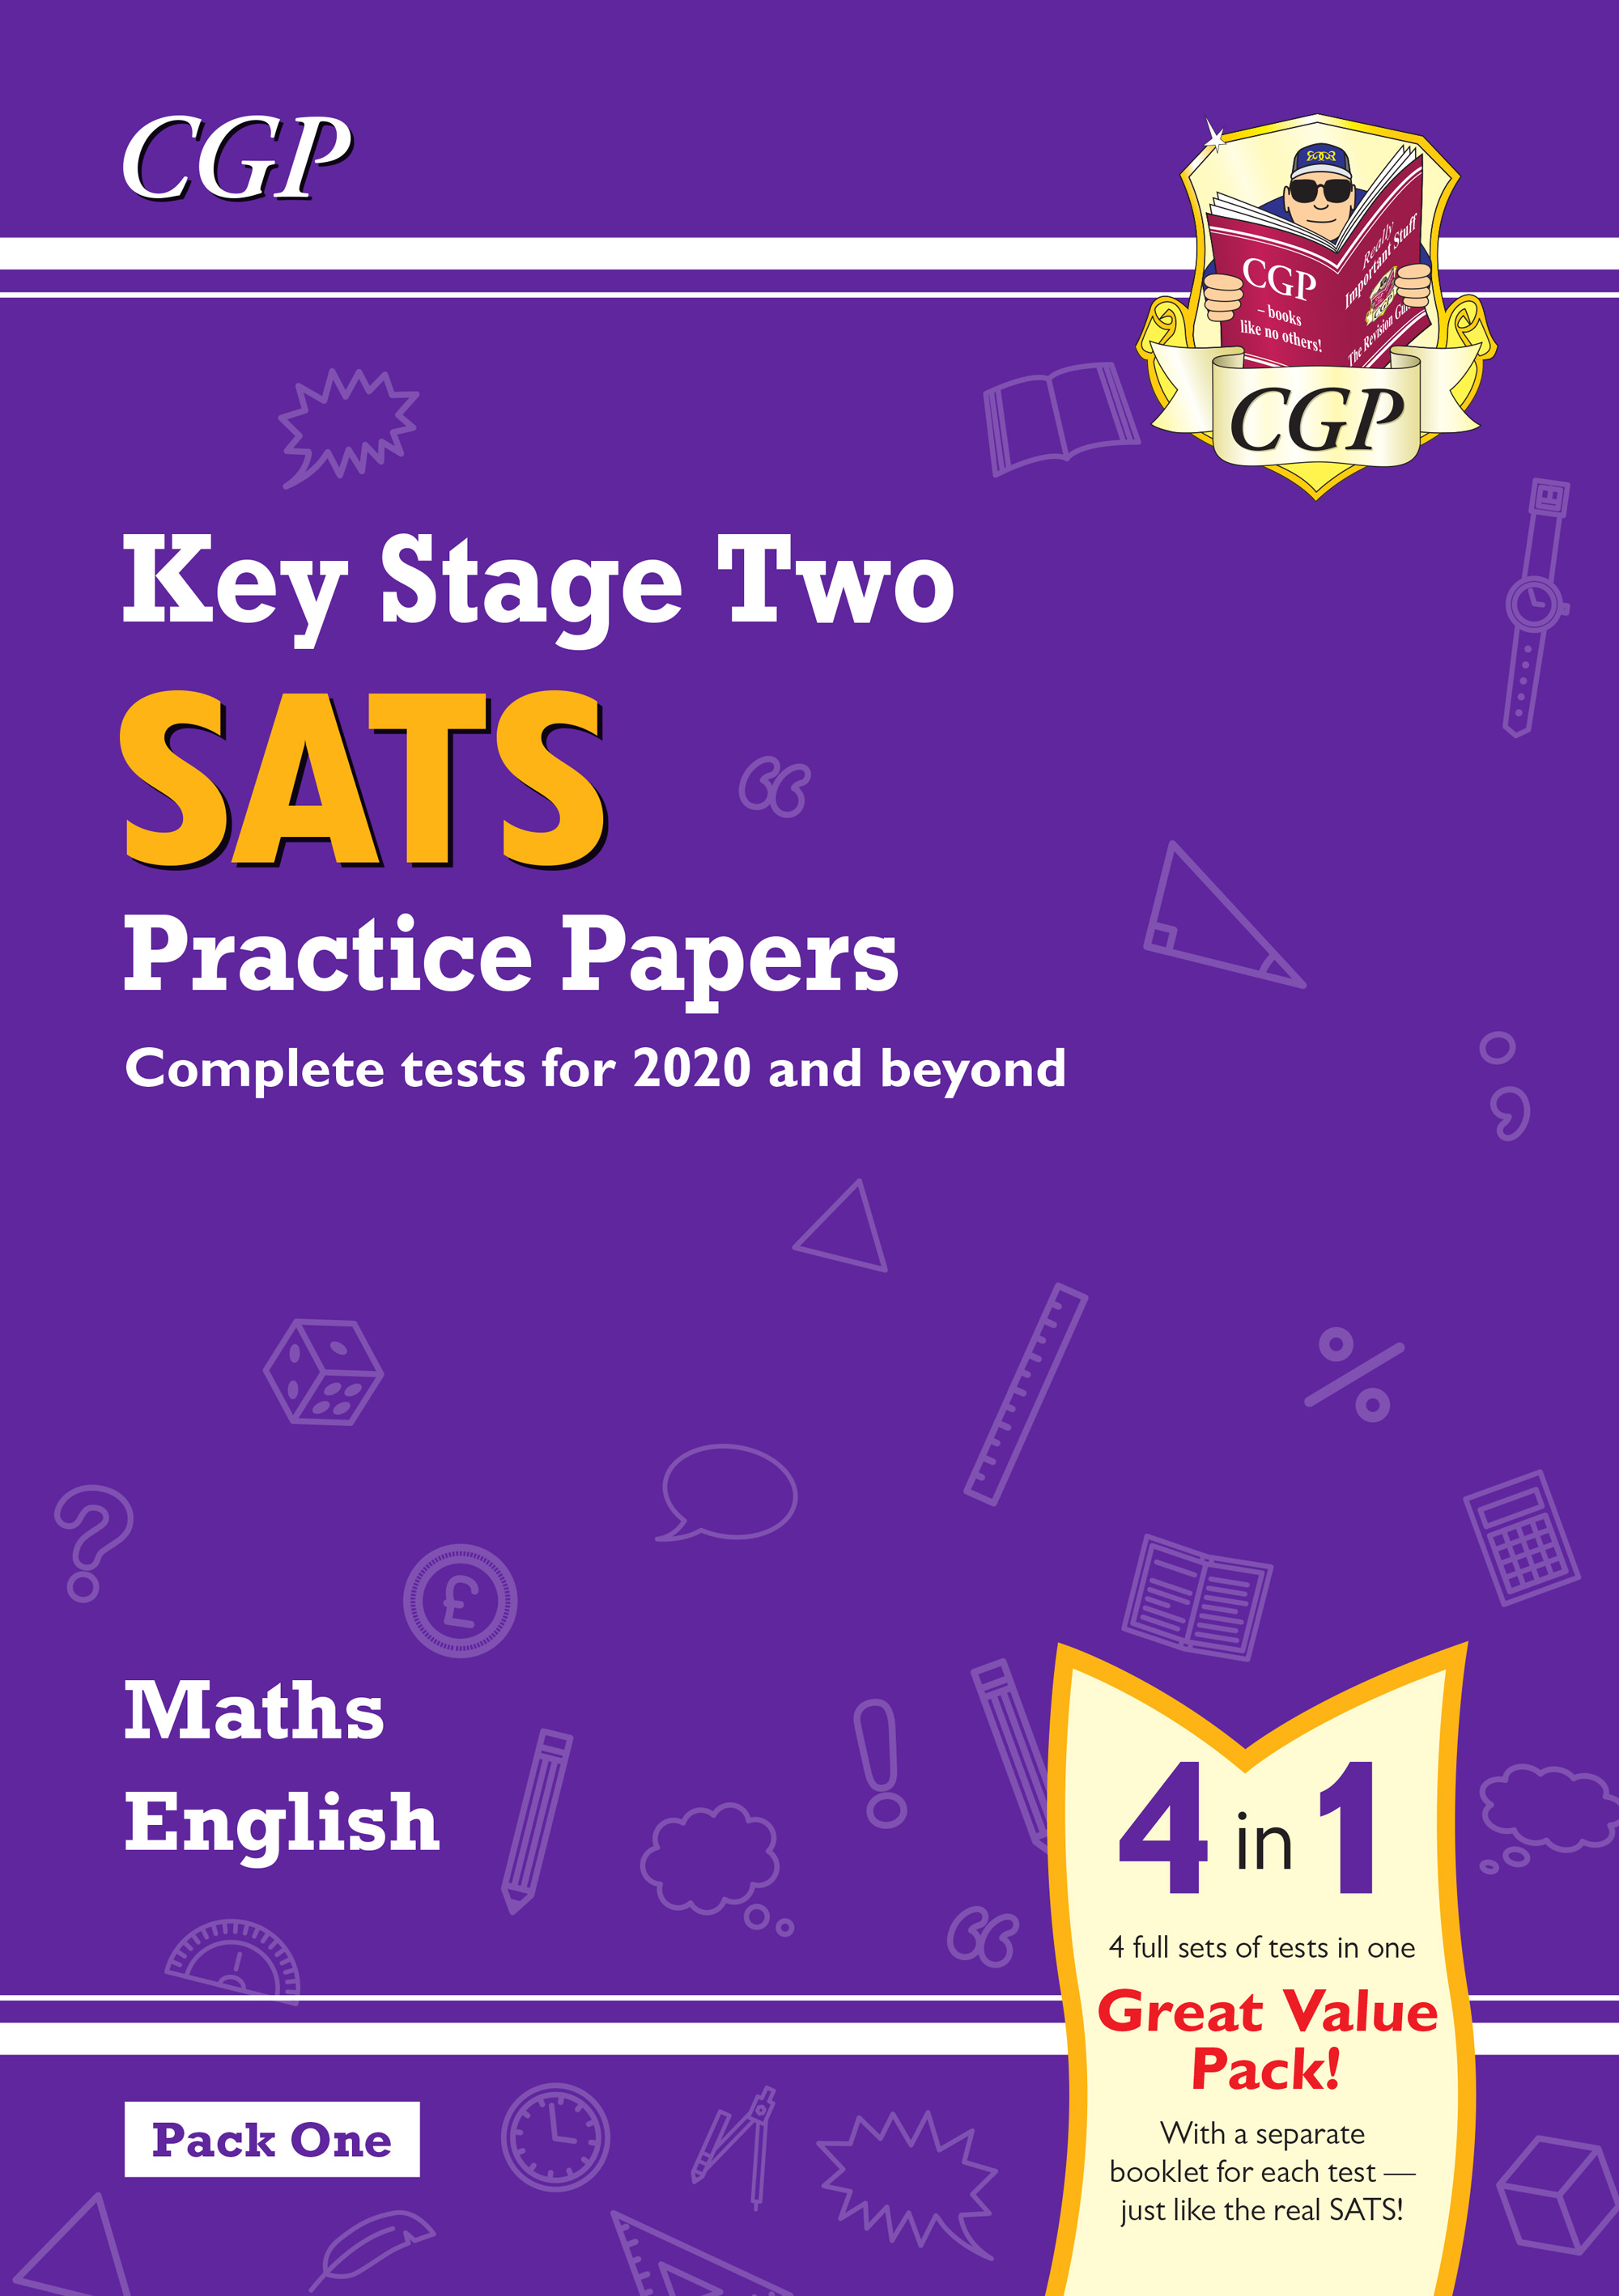 MEB24 - KS2 Maths and English SATS Practice Papers Pack (for the 2021 tests) - Pack 1